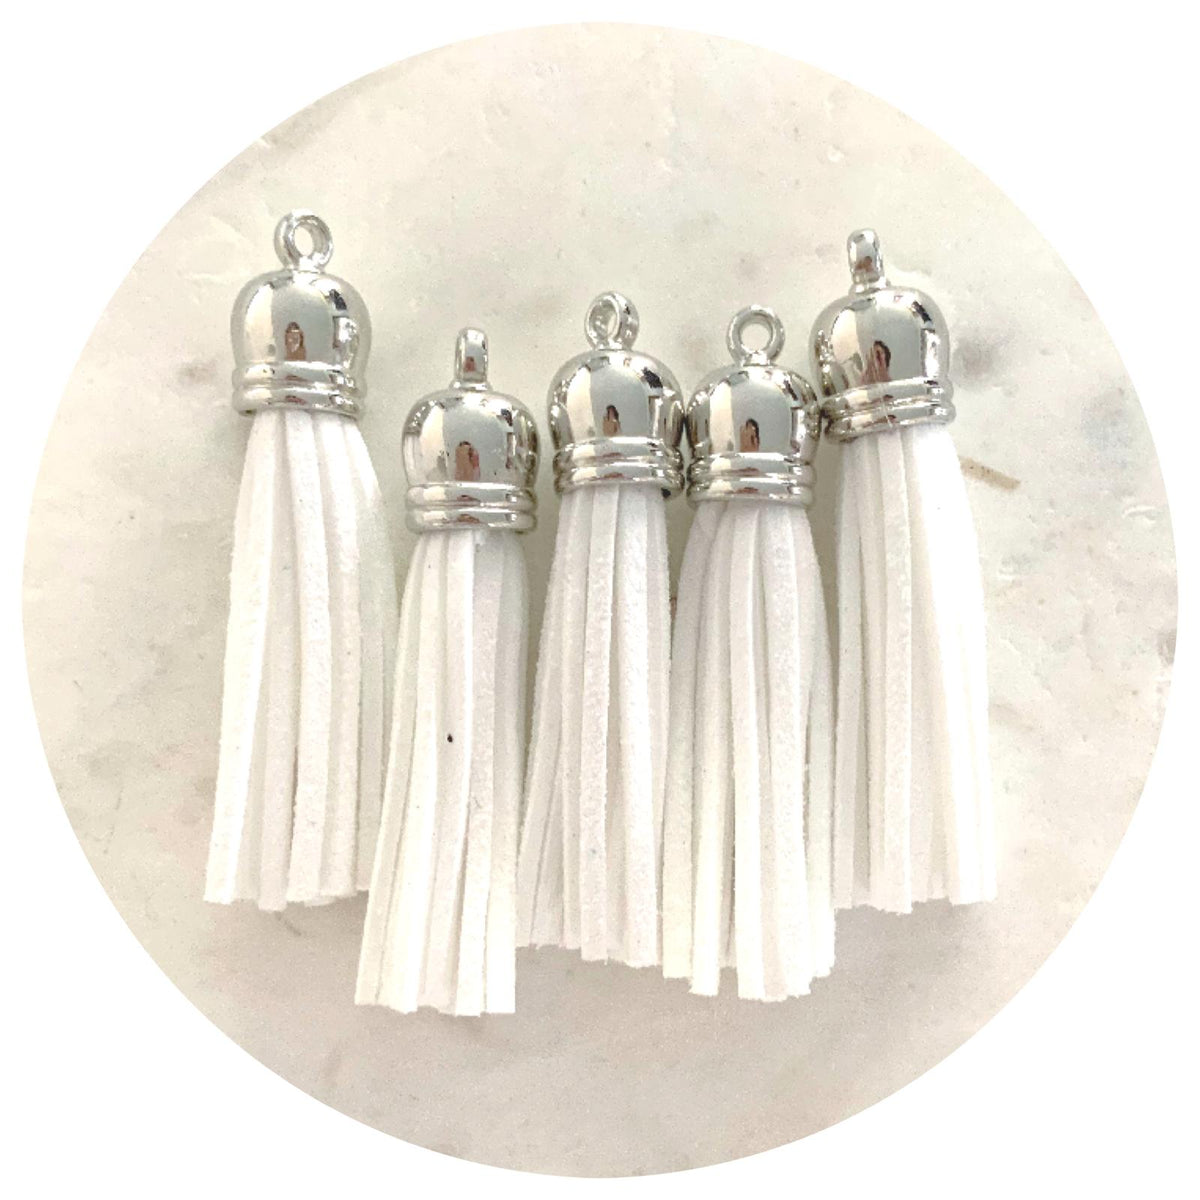 55mm Suede Tassels with Silver Cap DIY Jewelry